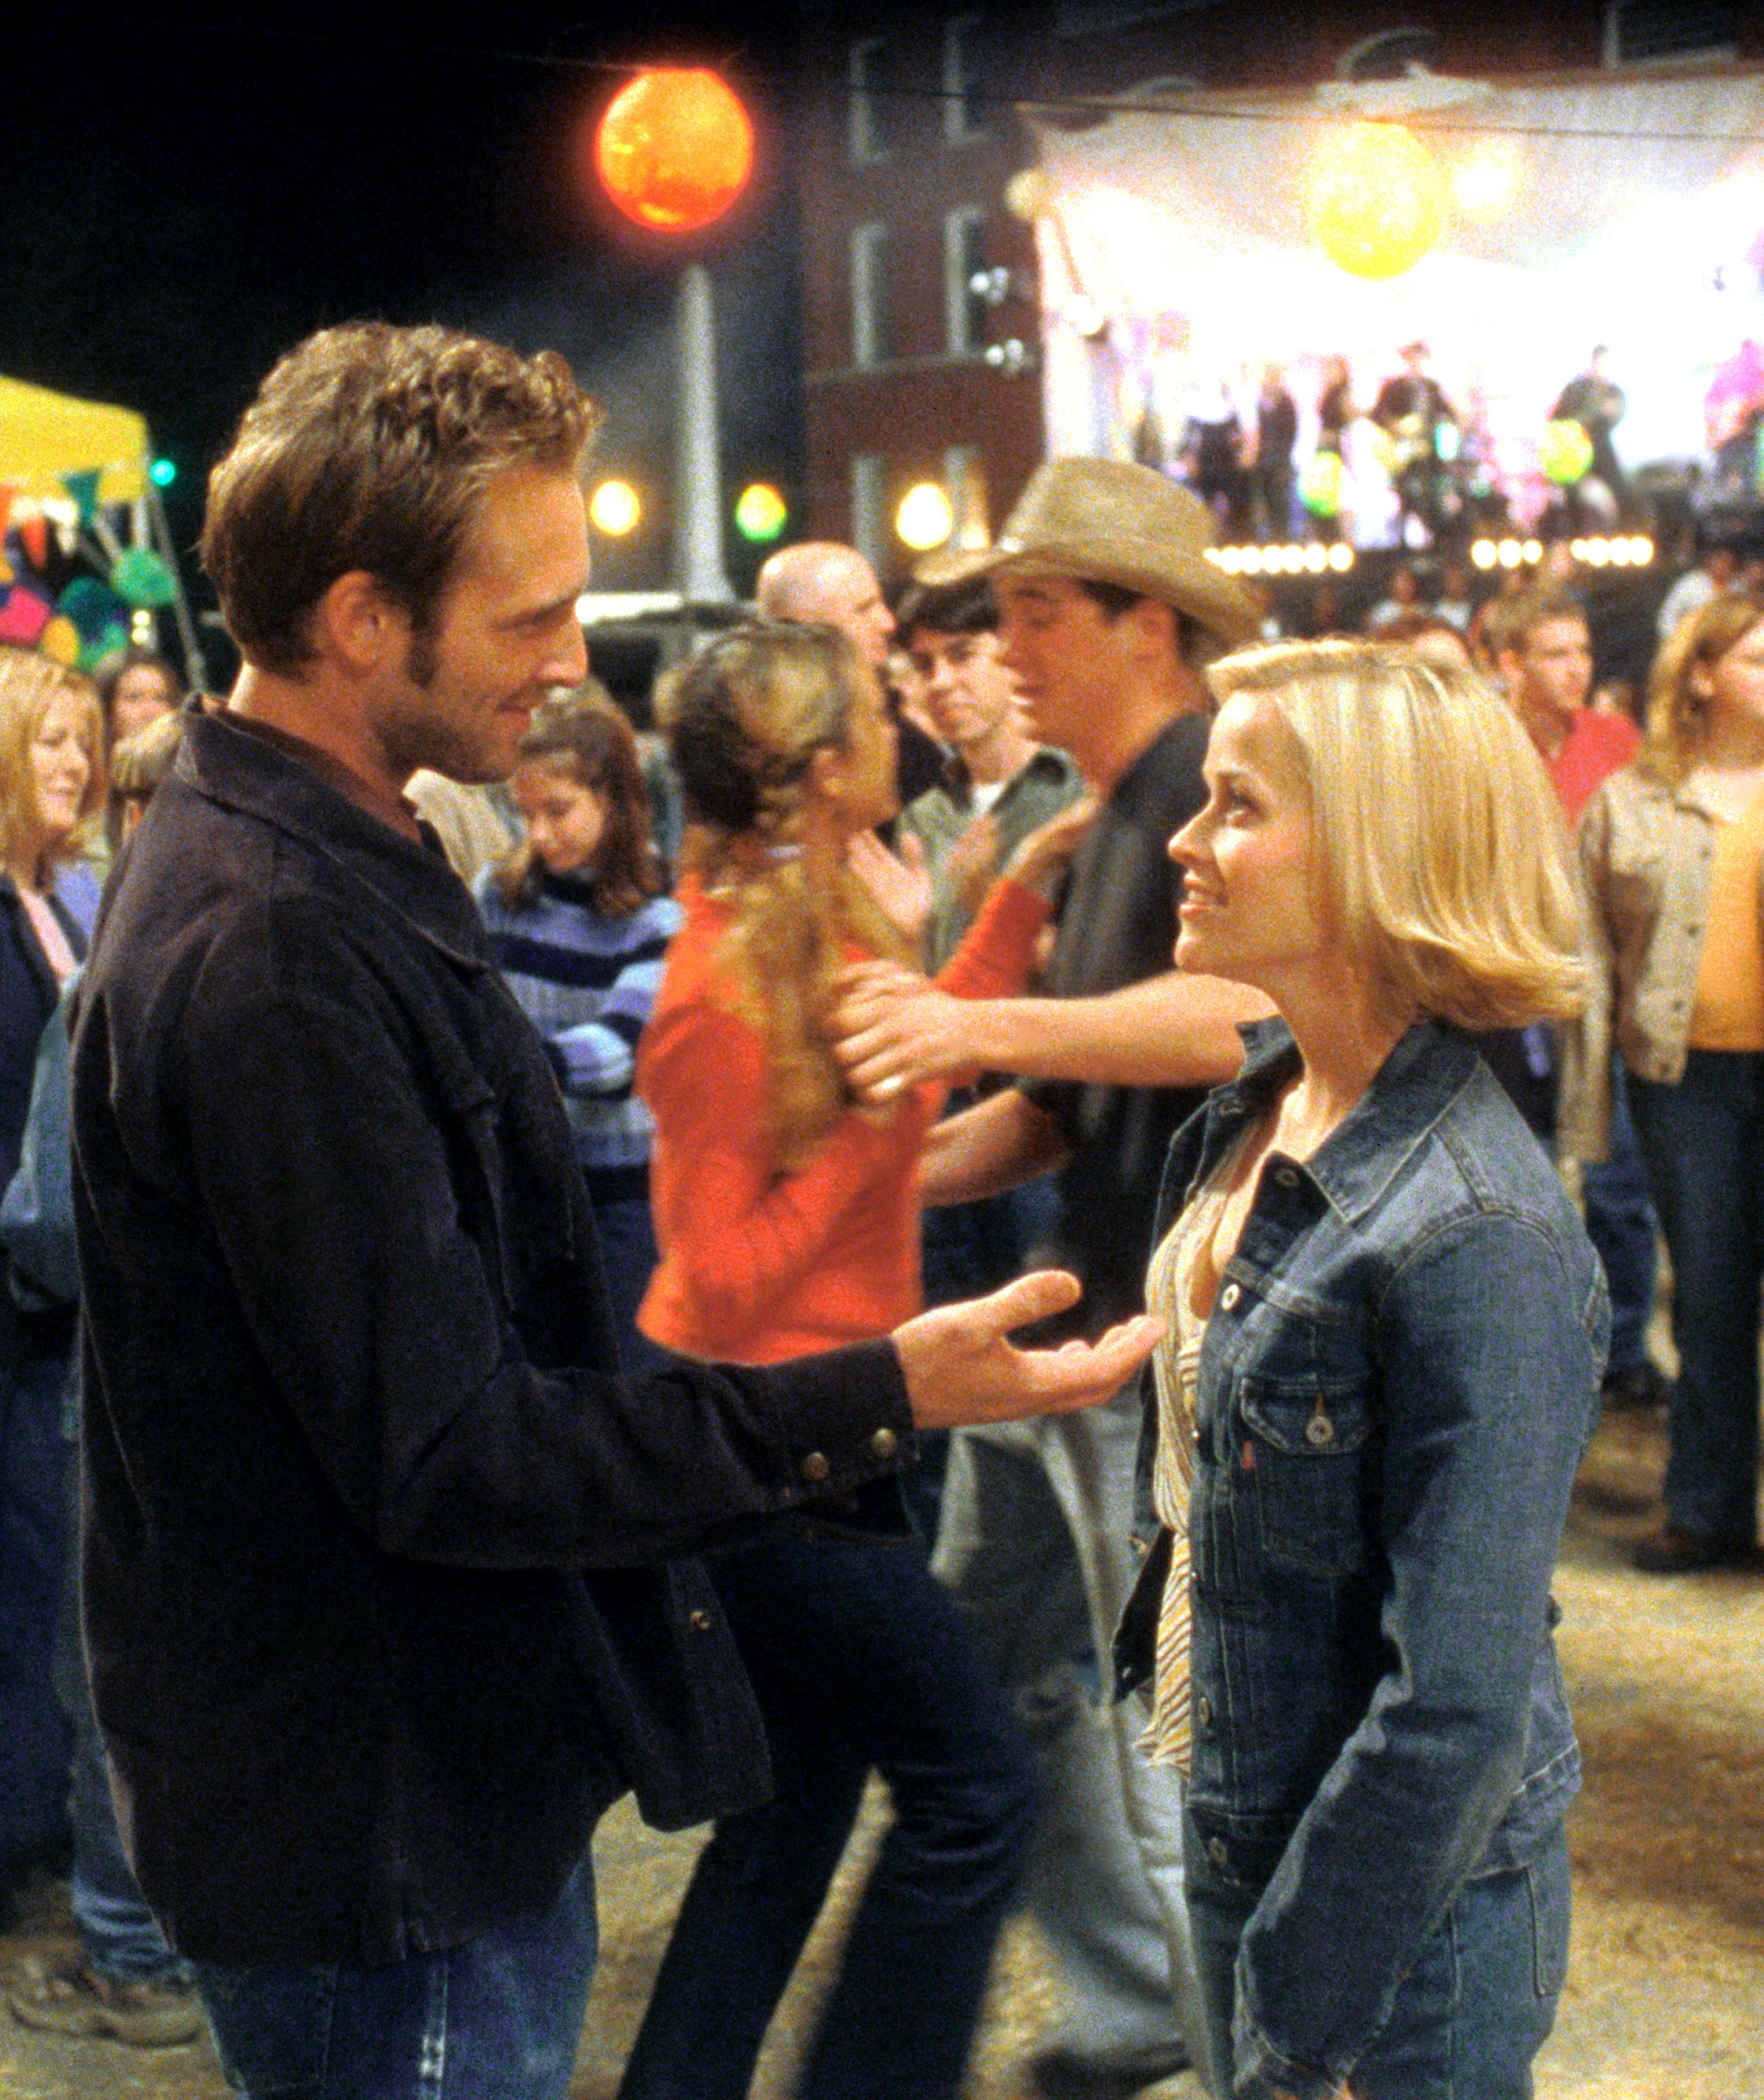 SWEET HOME ALABAMA, Josh Lucas, Reese Witherspoon, 2002, (c) Walt Disney/courtesy Everett Collction